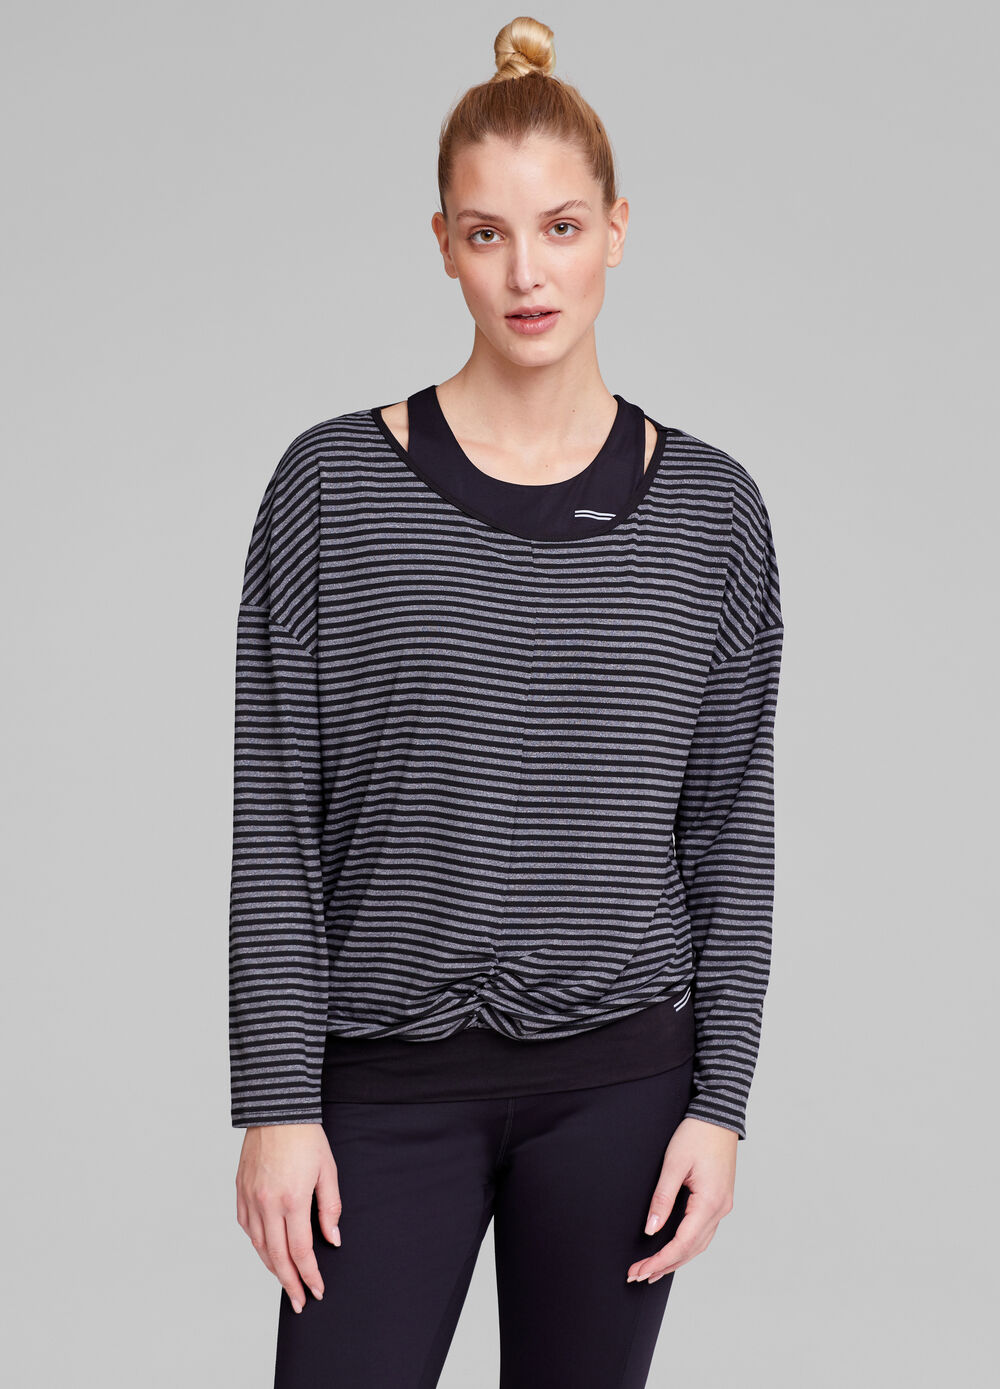 Gym T-shirt with striped pattern